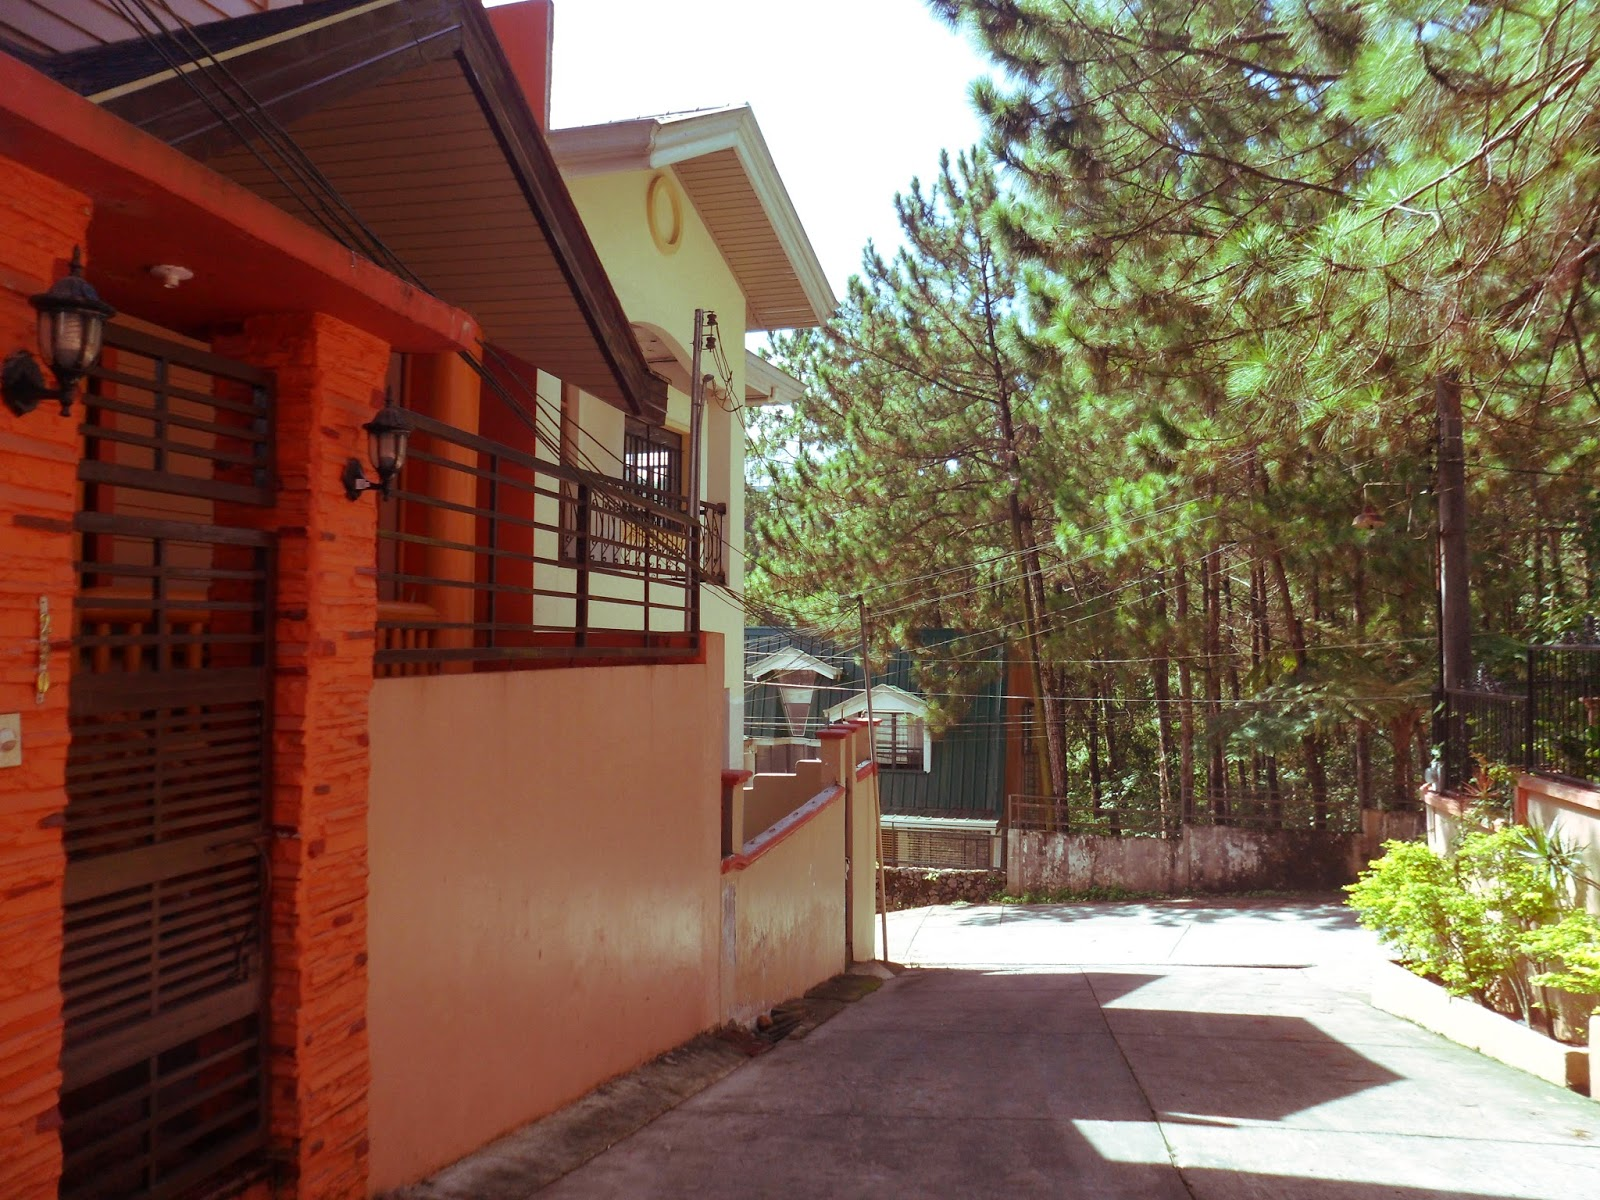 Baguio Pines Transient House